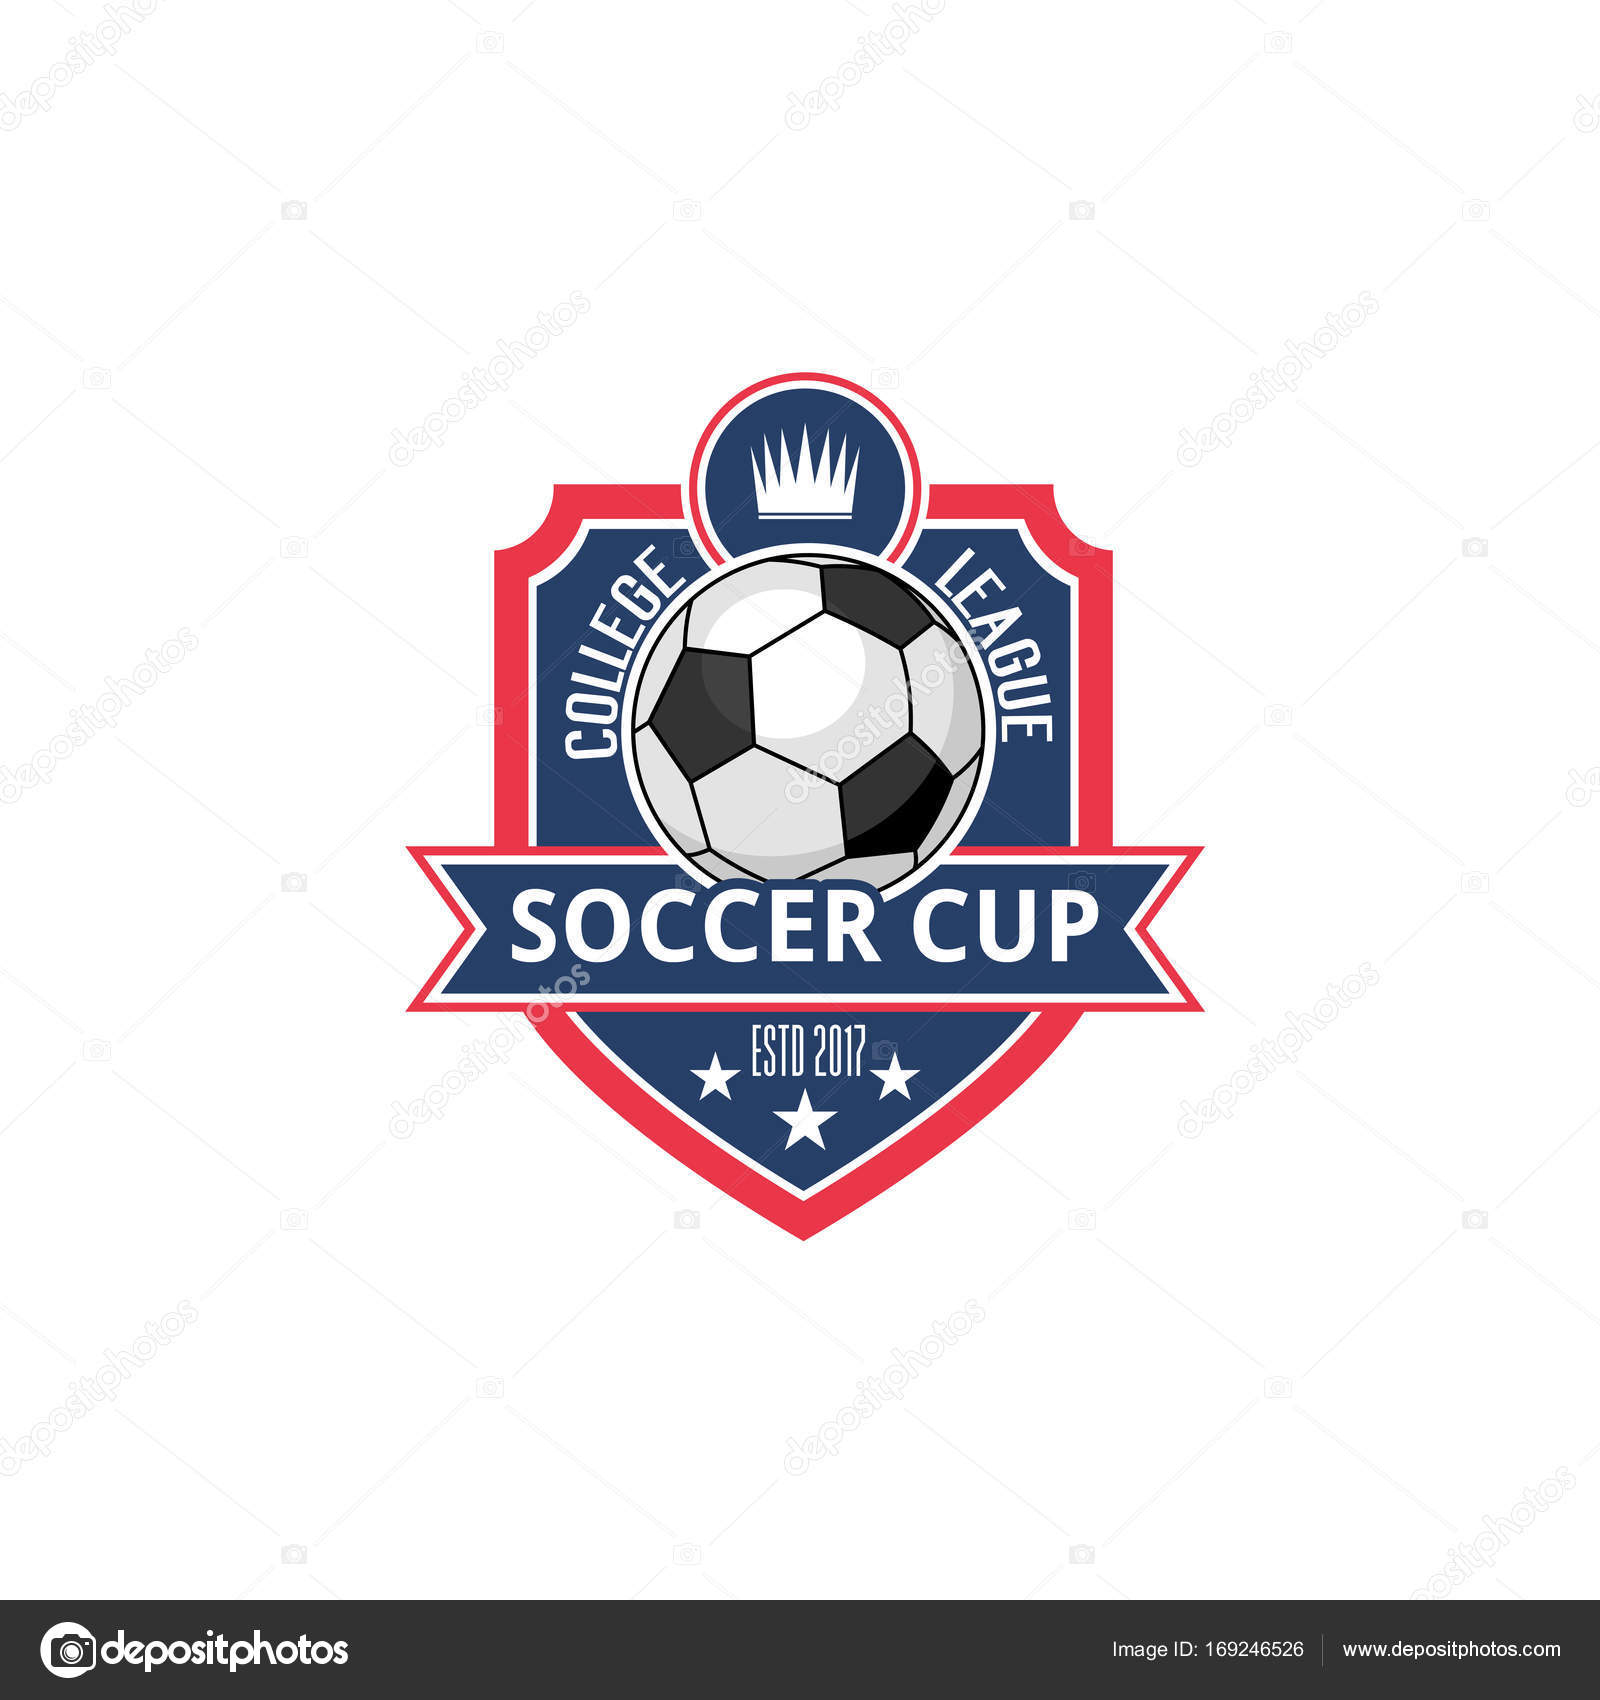 Soccer college football cup ball badge vector icon stock vector soccer cup or college league fan club icon or badge of football ball victory stars and crown vector isolated heraldic shield symbol for soccer sport buycottarizona